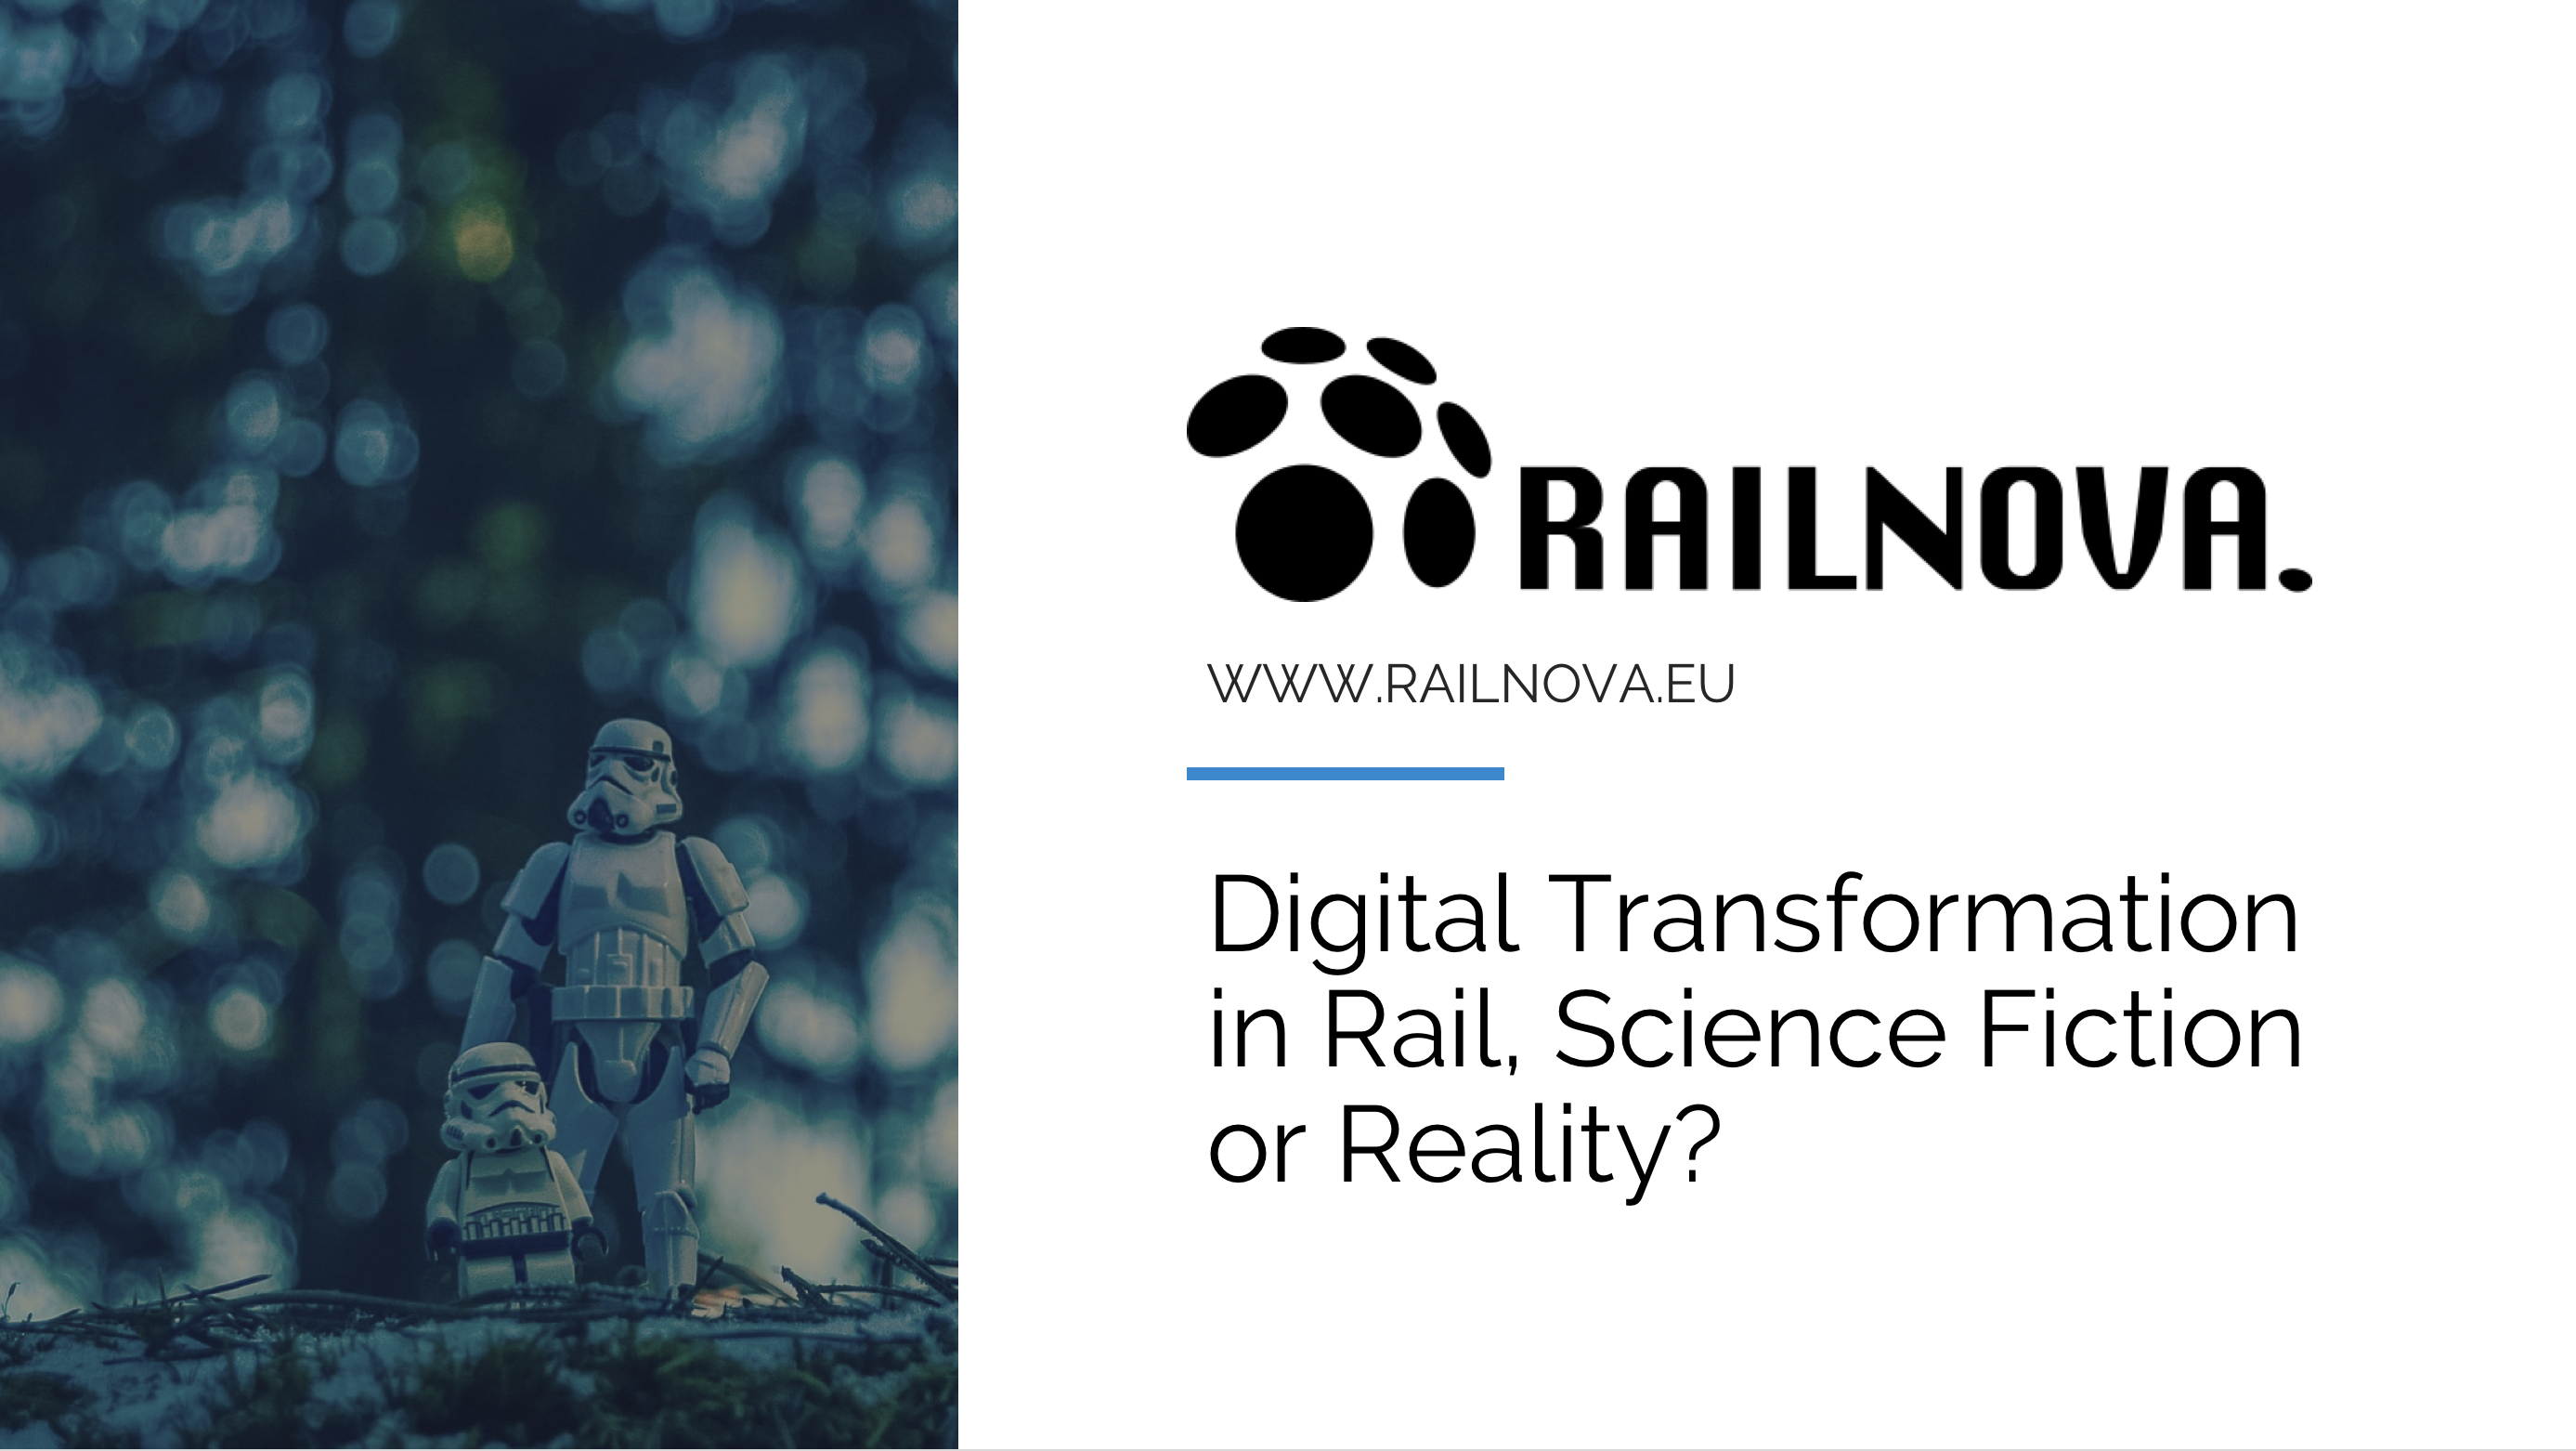 Digital tranformation in rail science fiction or reality